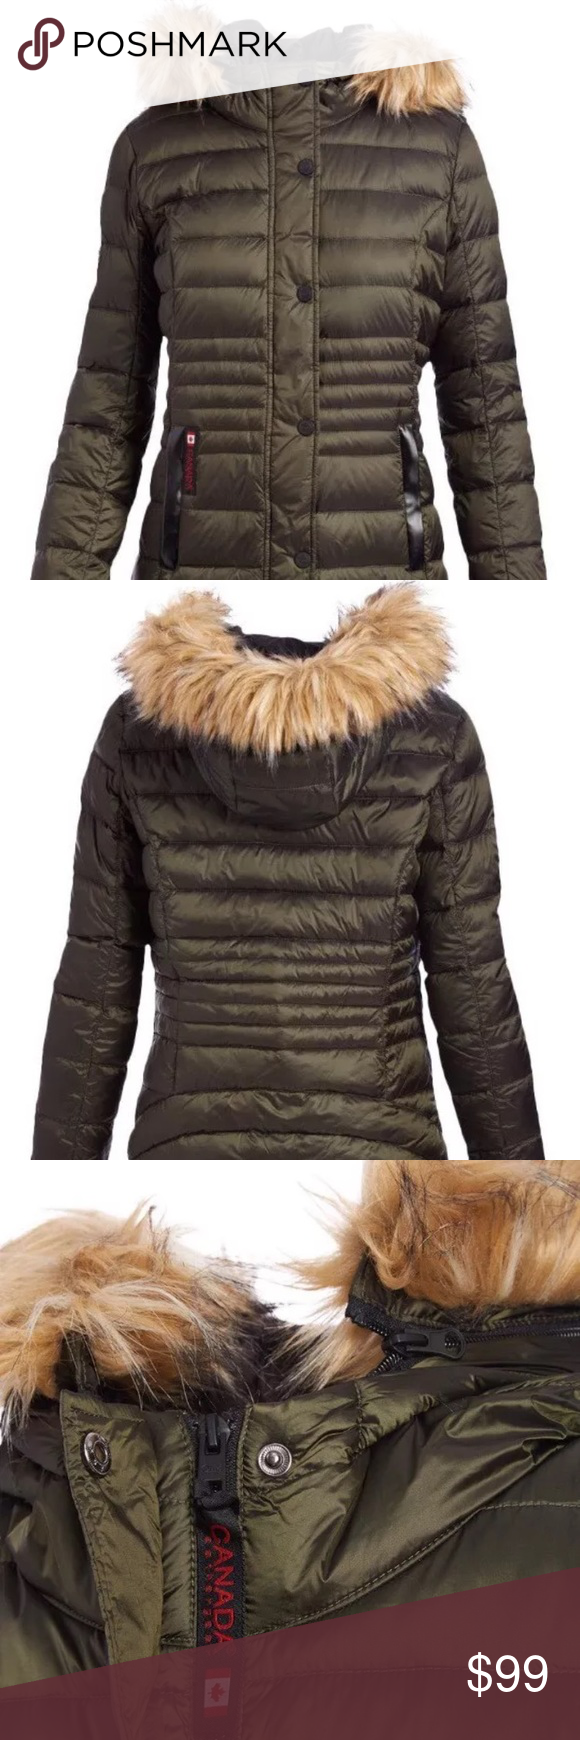 7a9eddf50 ✨FINAL SALE✨ canada weather gear down puffer coat Gorgeous new with tags Canada  Weather Gear women's down puffer coat in size medium! Olive in color and ...